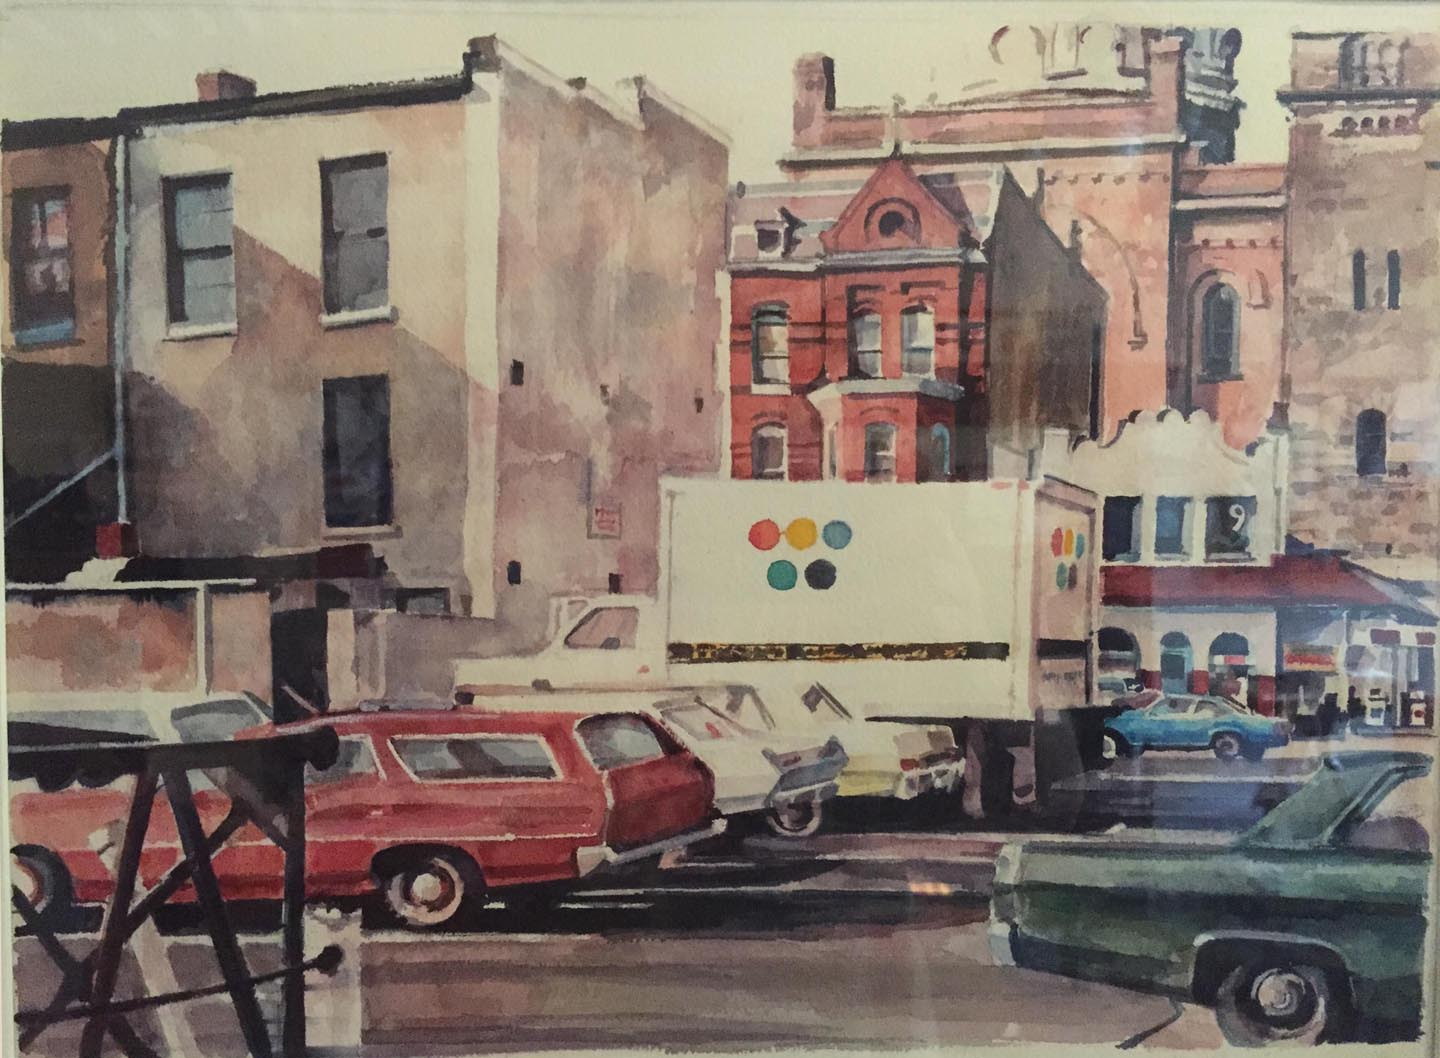 """Print Truck,watercolor on paper,11 1/2"""" x 15"""", 1980, Private Collection"""